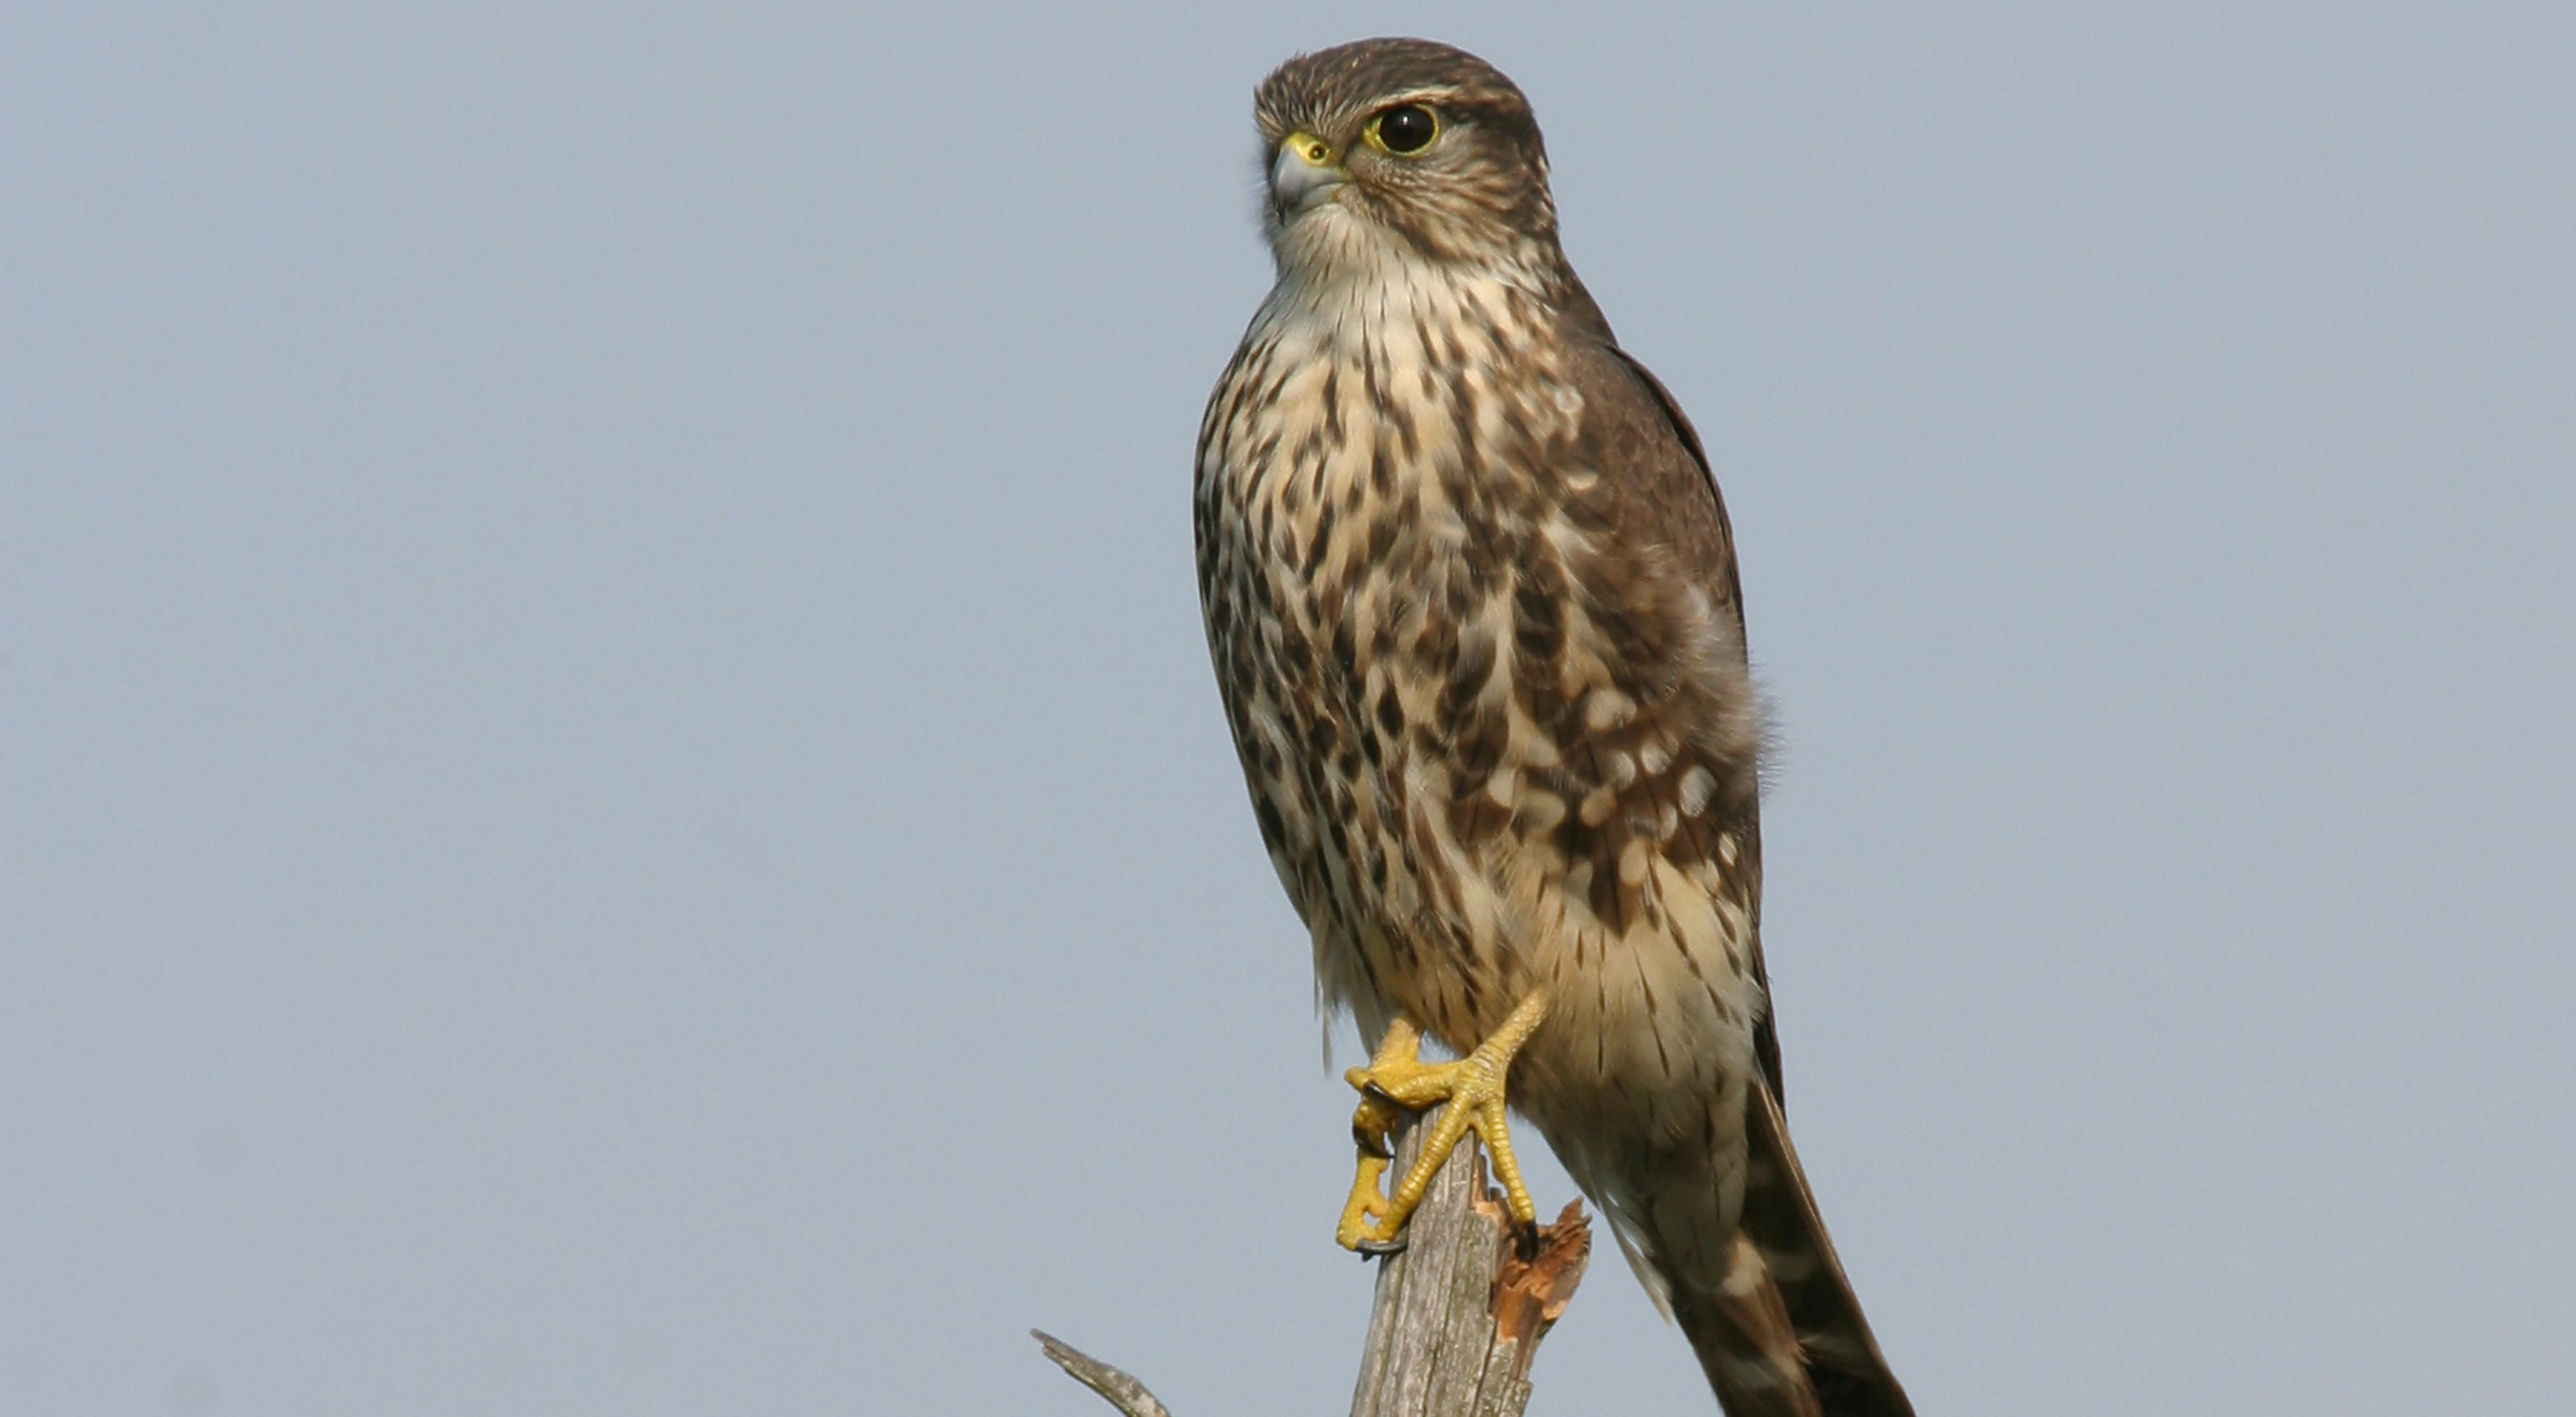 Merlin perched on branch.